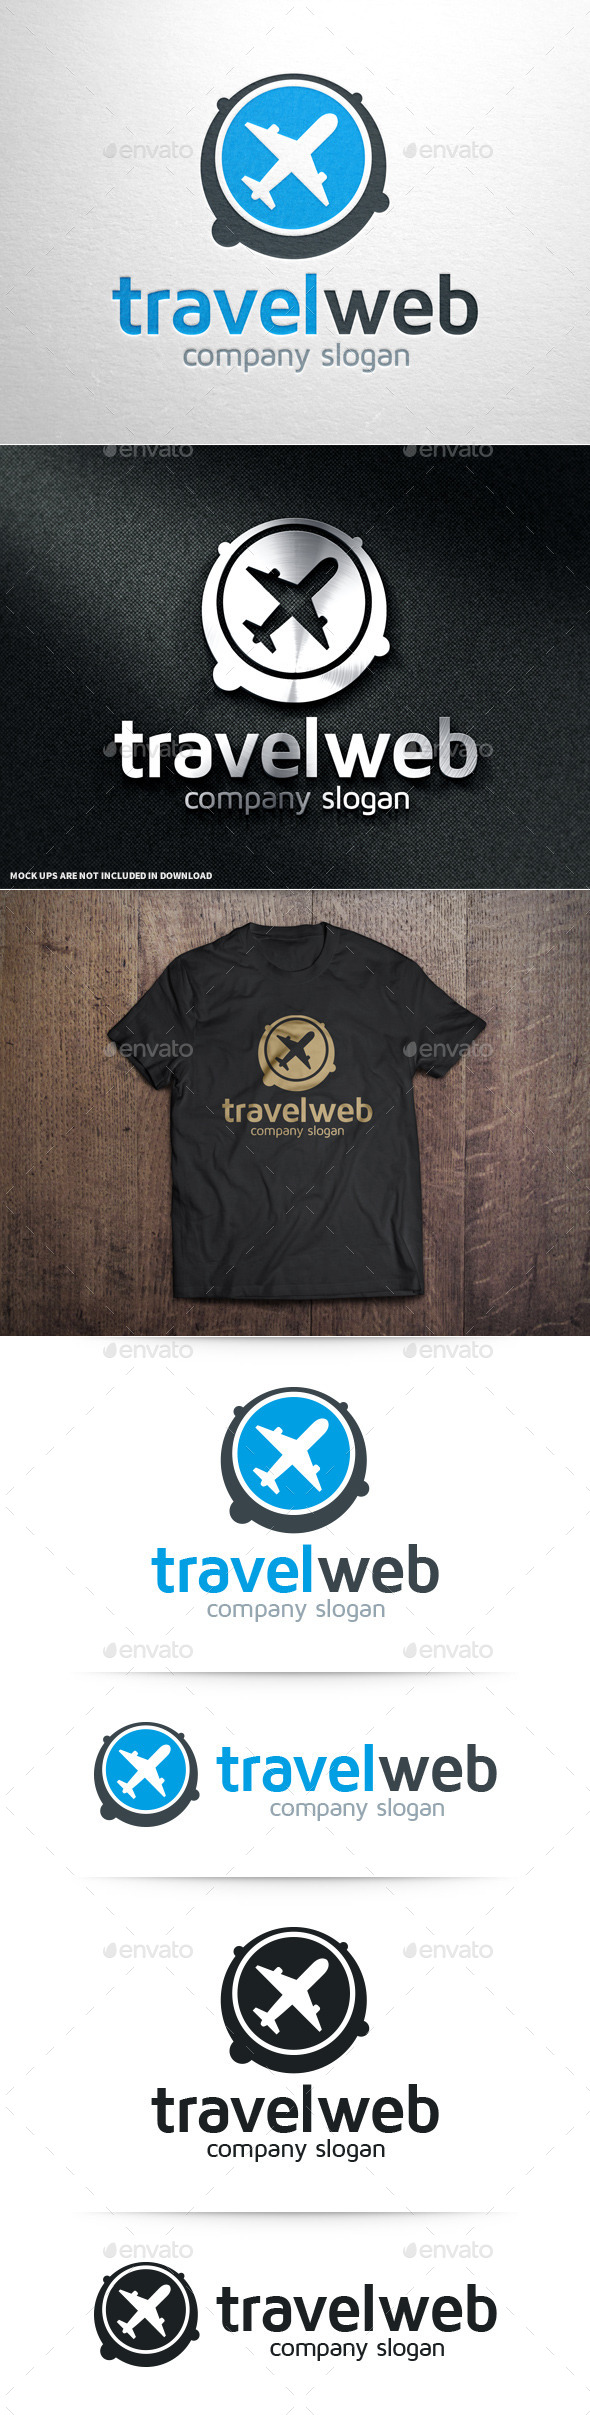 GraphicRiver Travel Web Logo Template 10839663